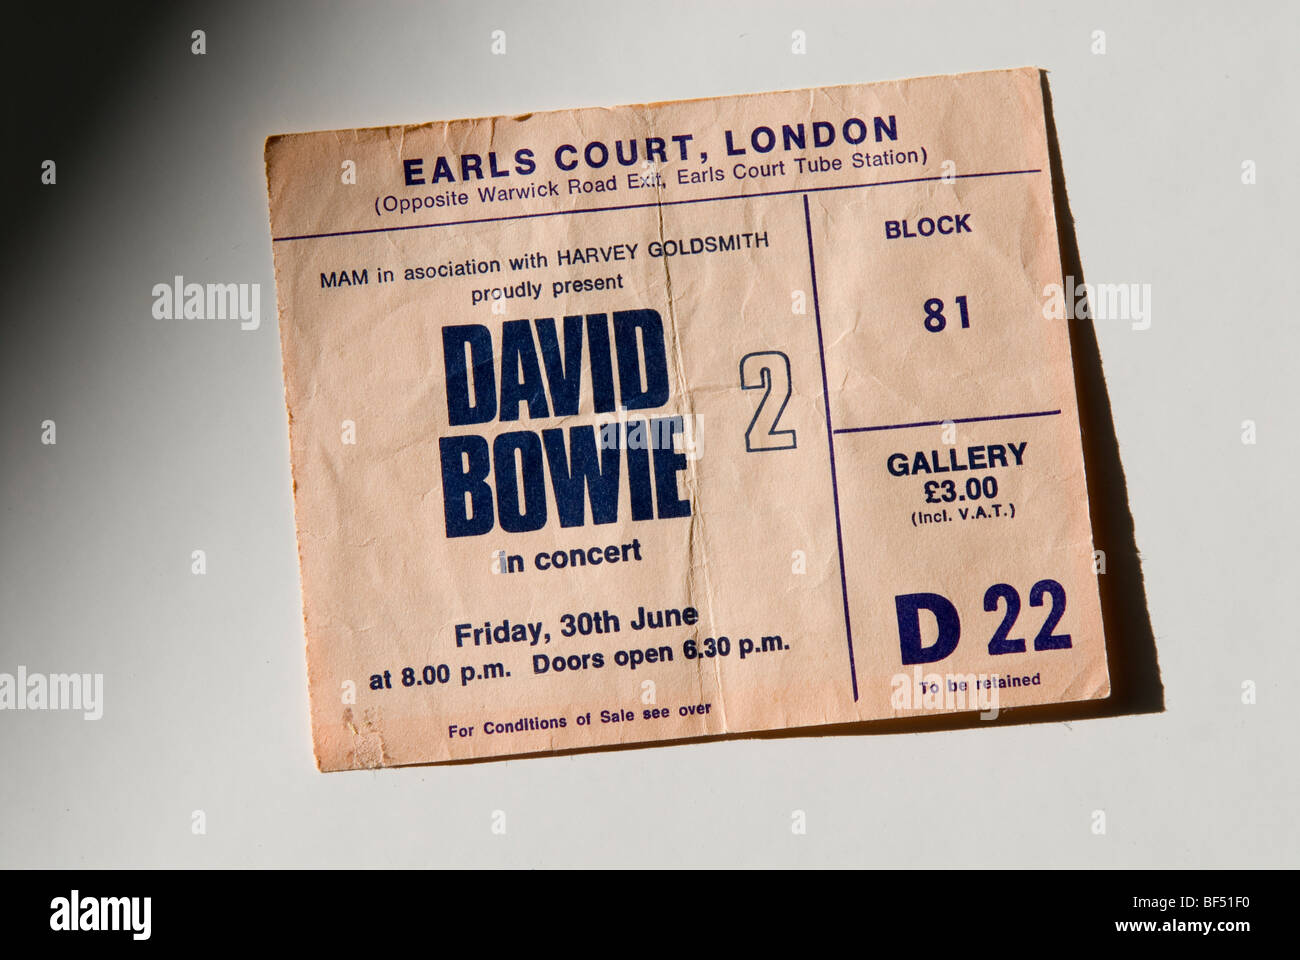 David Bowie concert ticket from 1976 - Stock Image